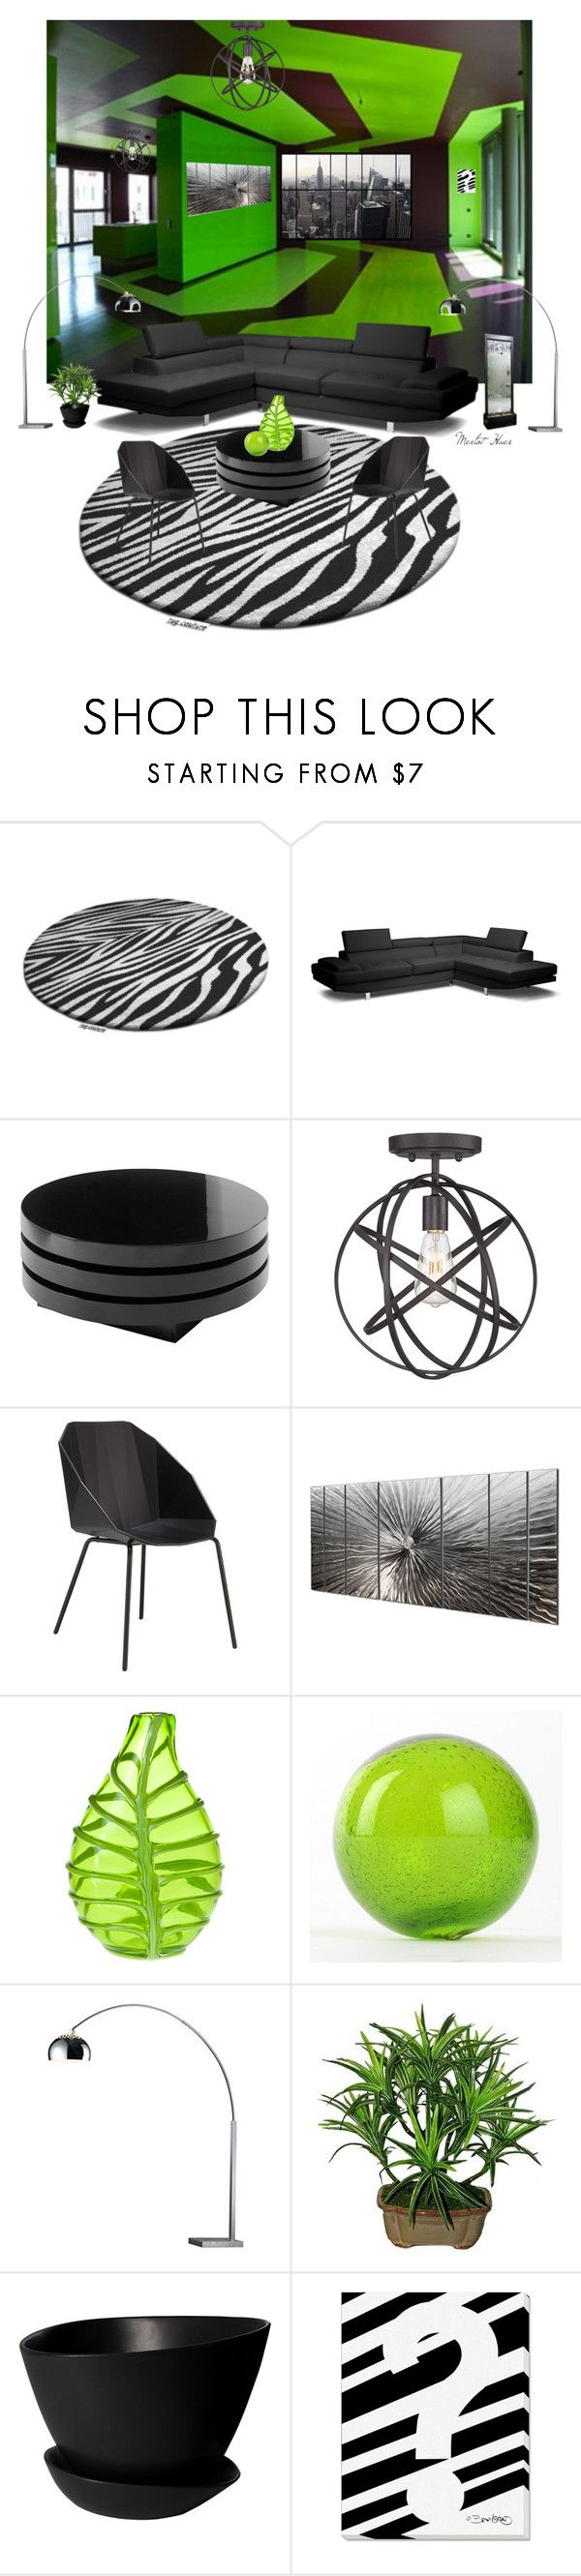 """""""Endeavour"""" by merlothues ❤ liked on Polyvore featuring interior, interiors, interior design, home, home decor, interior decorating, Carlos Miele, Ligne Roset, WALL and Zara Home"""